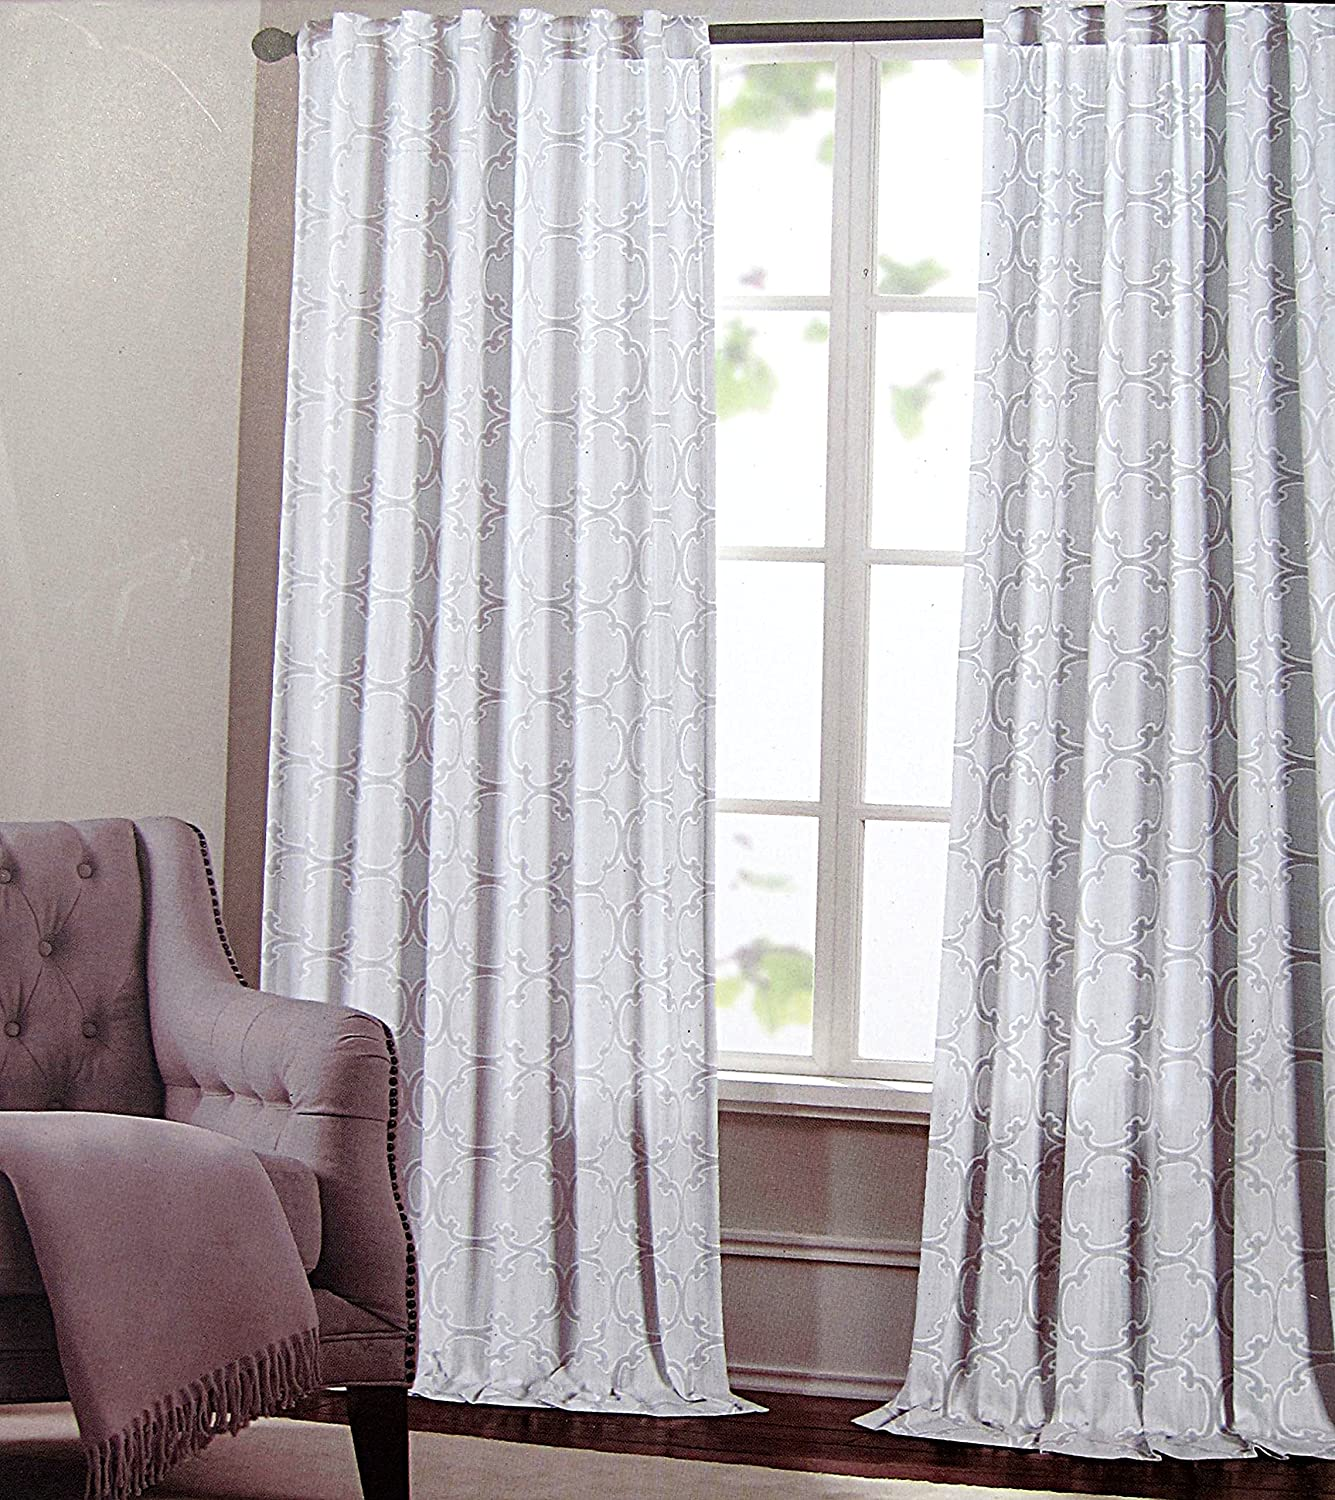 Amazon Max Studio Set of 2 Window Curtains Panels Drapes